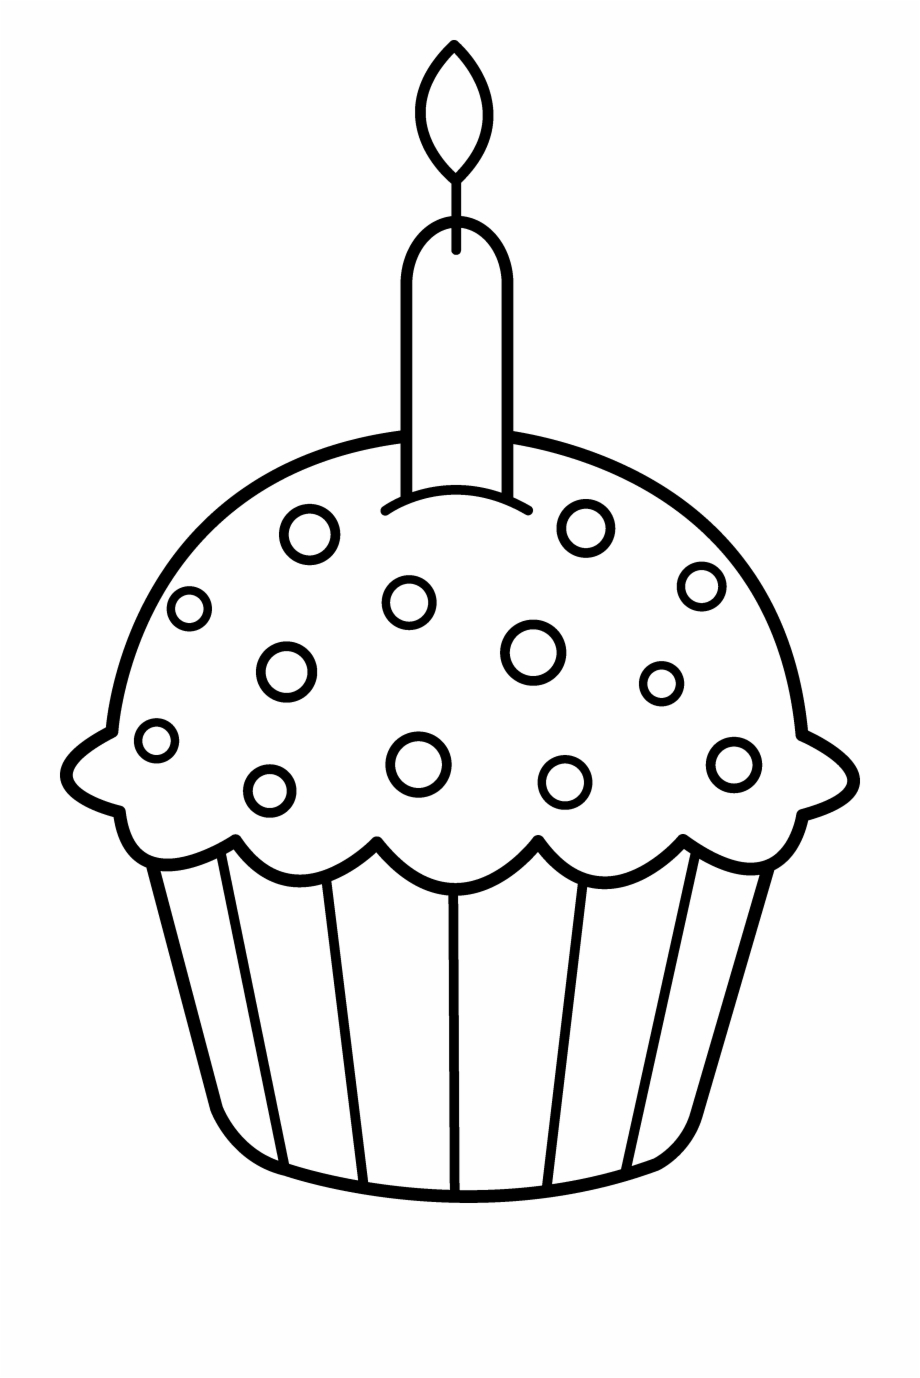 Cupcake clipart free black and white png download Graphic Royalty Free Stock Free Clip Art Gift Ideas - Birthday ... png download